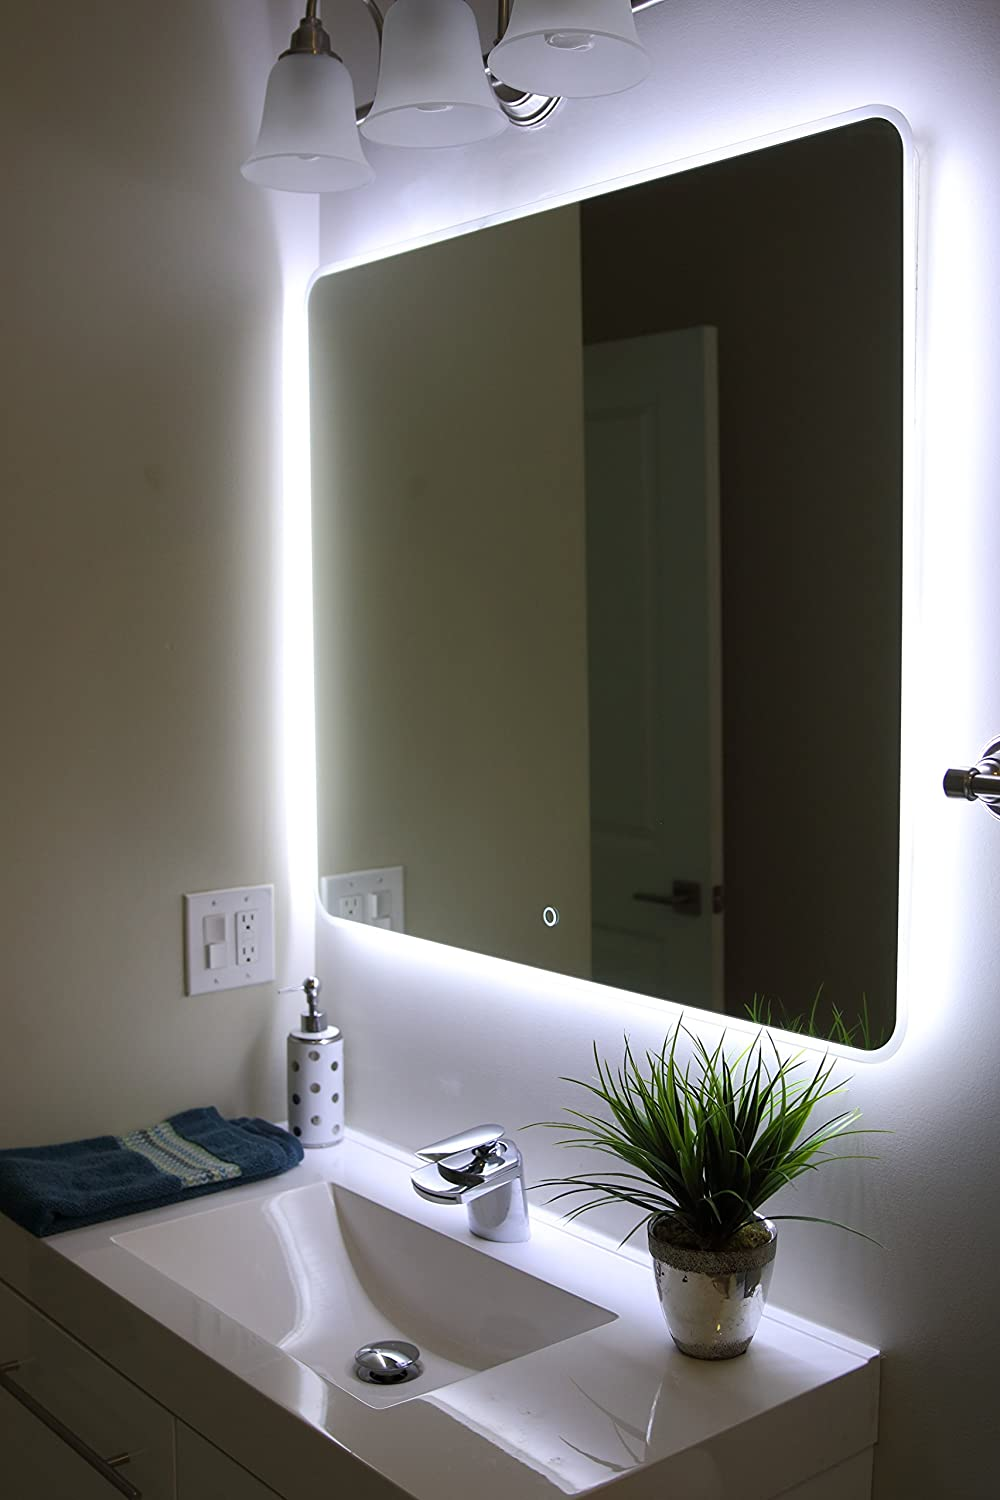 Amazon Windbay Backlit Led Light Bathroom Vanity Sink Mirror Illuminated 36 Home Kitchen